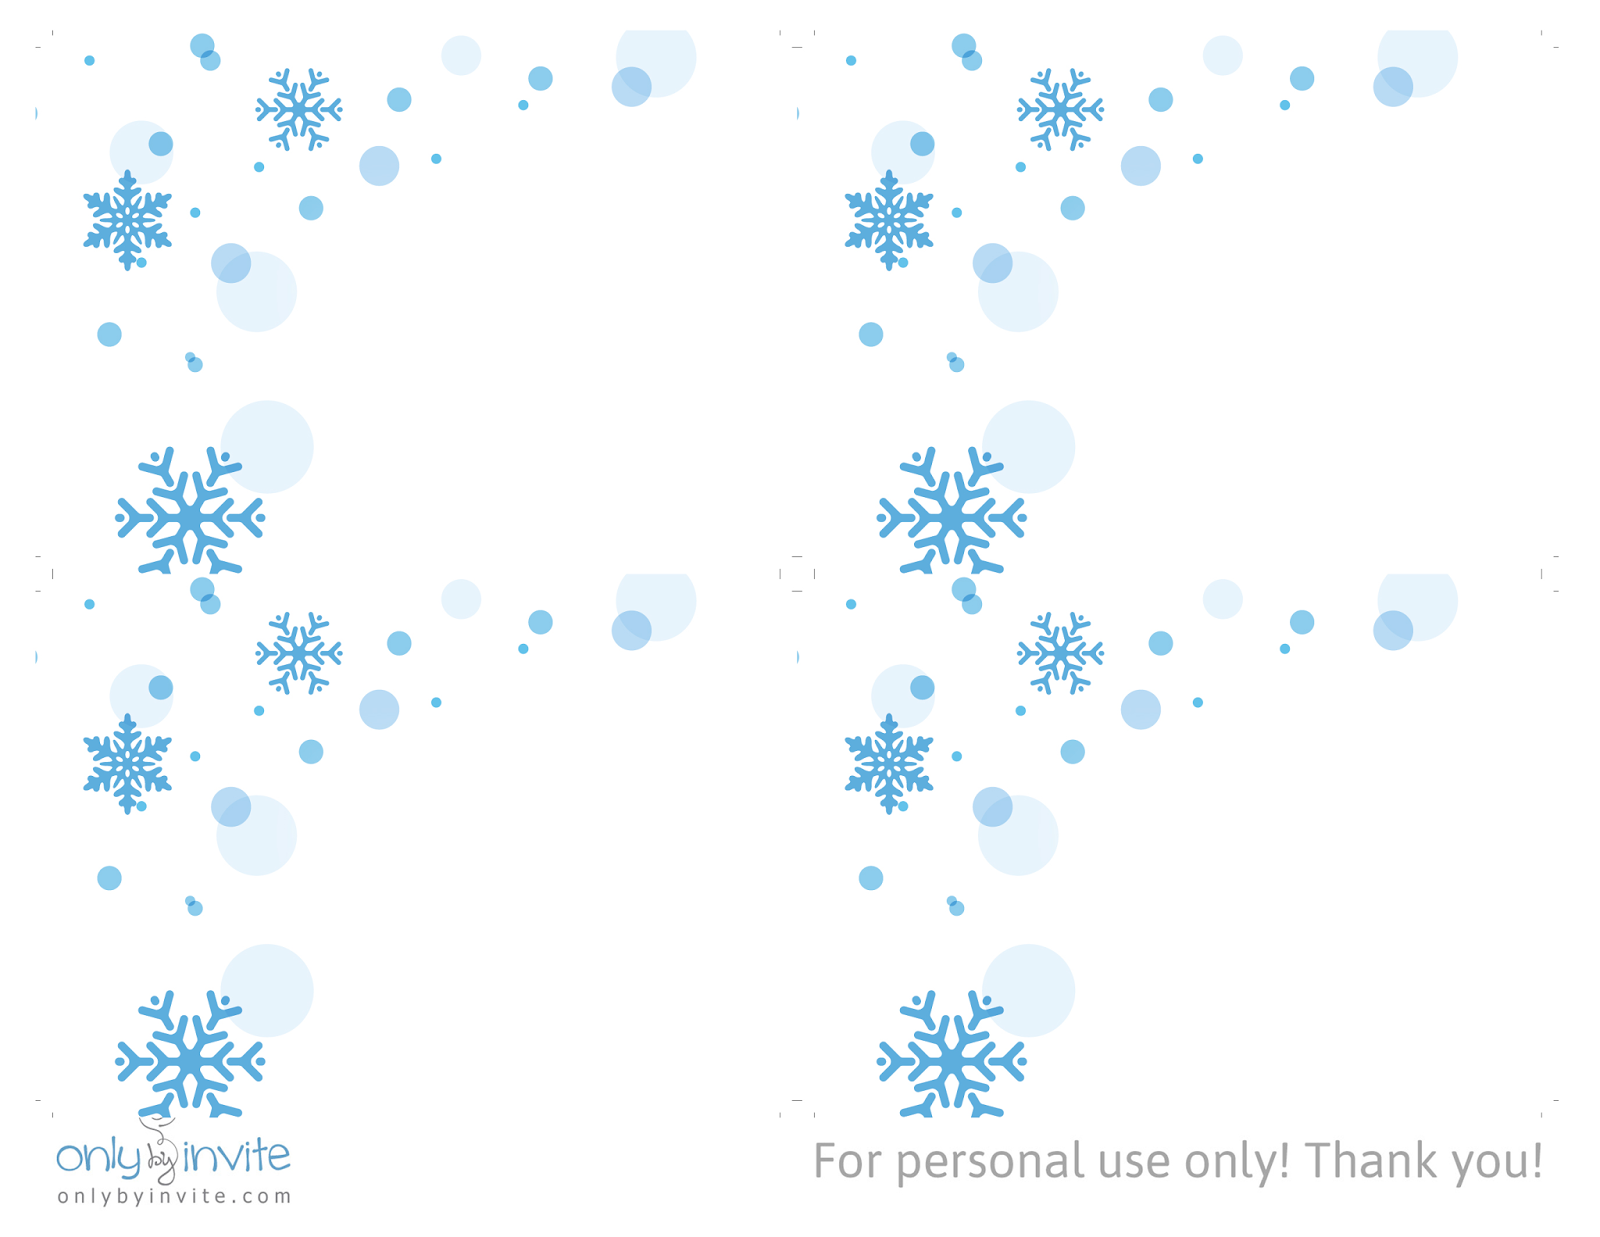 Snowflakes   Free Winter Wedding RSVP Card Template  Free Rsvp Card Template